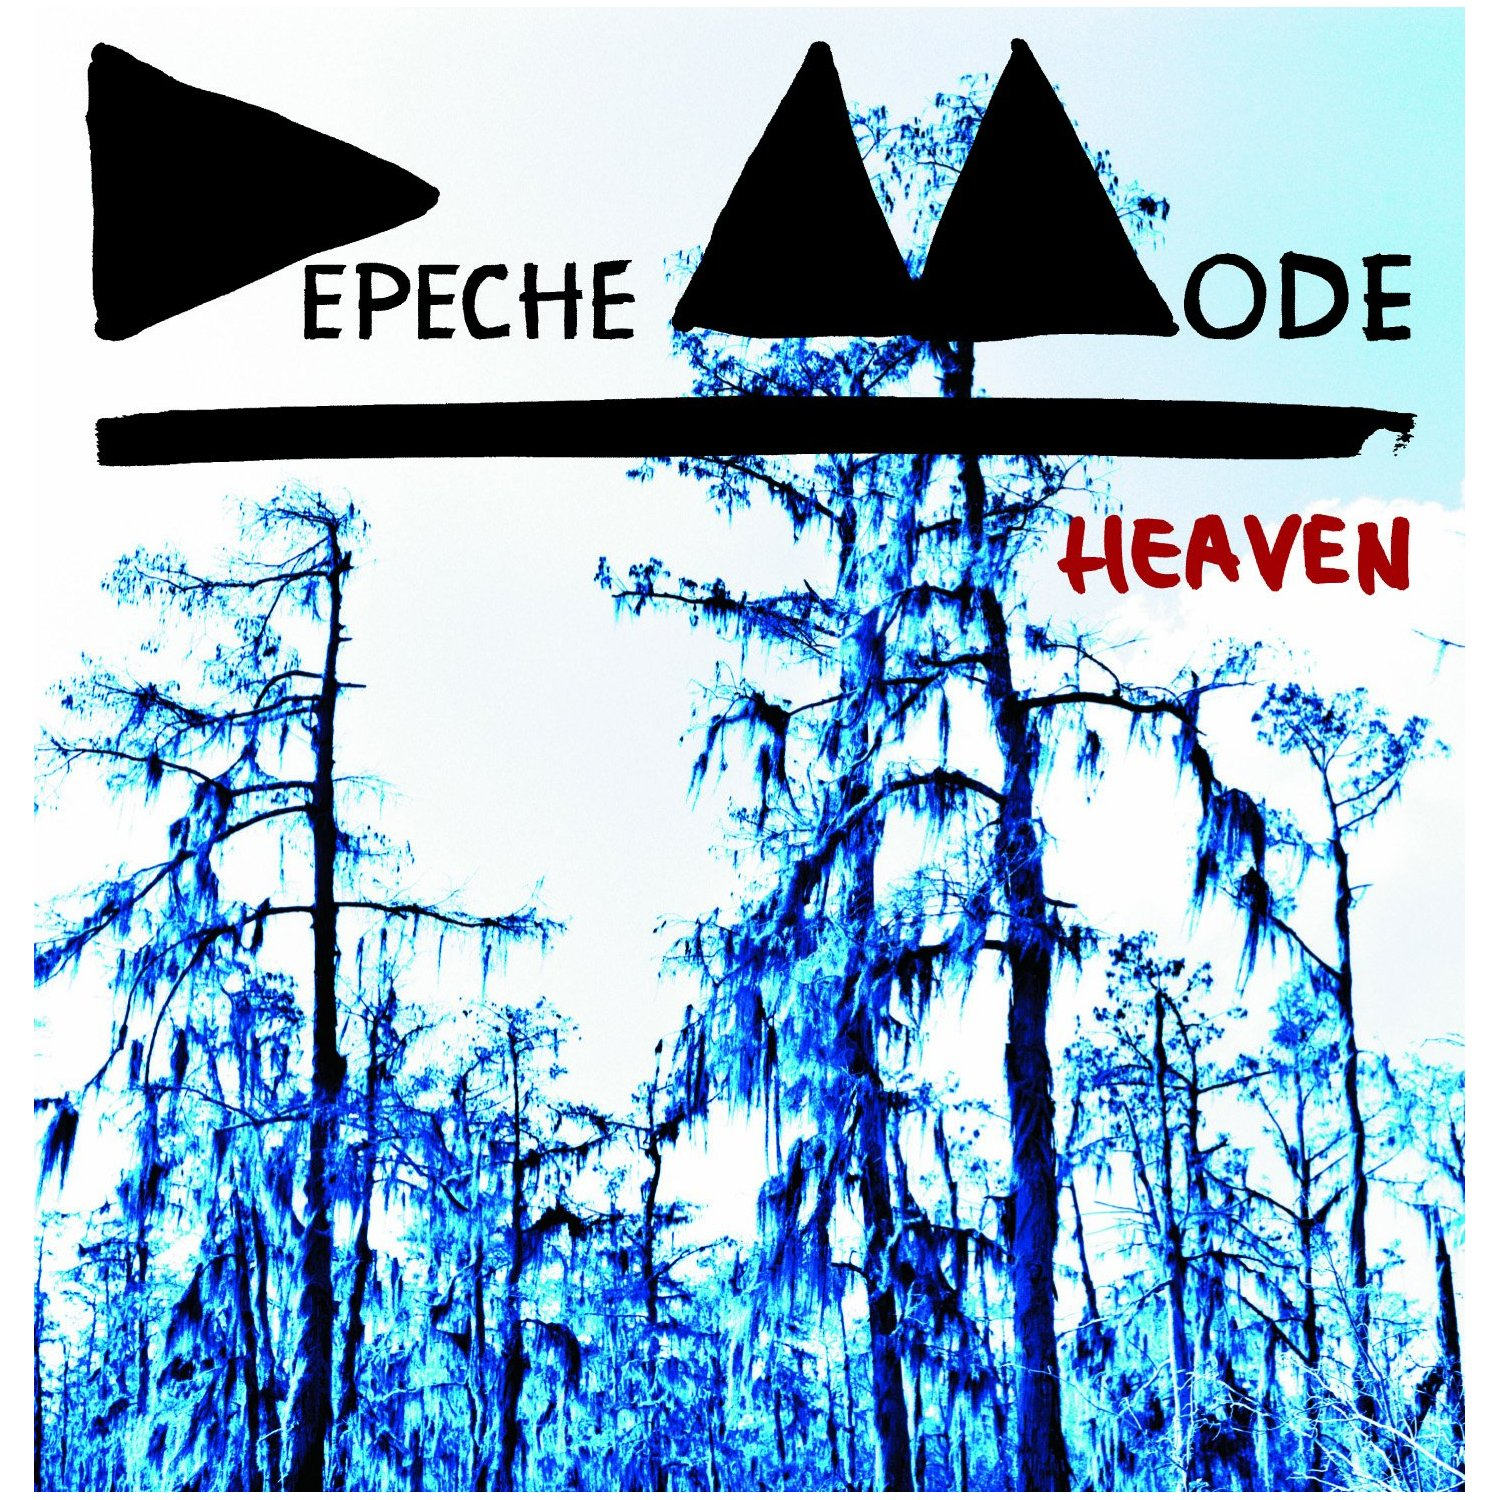 News Added Jan 31, 2013 New Studio Album 'Delta Machine' Set For Release March 26th on Columbia Records Depeche Mode to Debut Video for First Single 'Heaven' on VEVO Next Friday, February 1st (Columbia Records; New York, NY; January 24, 2013) – Depeche Mode have announced they will release their highly anticipated 13th studio album, […]